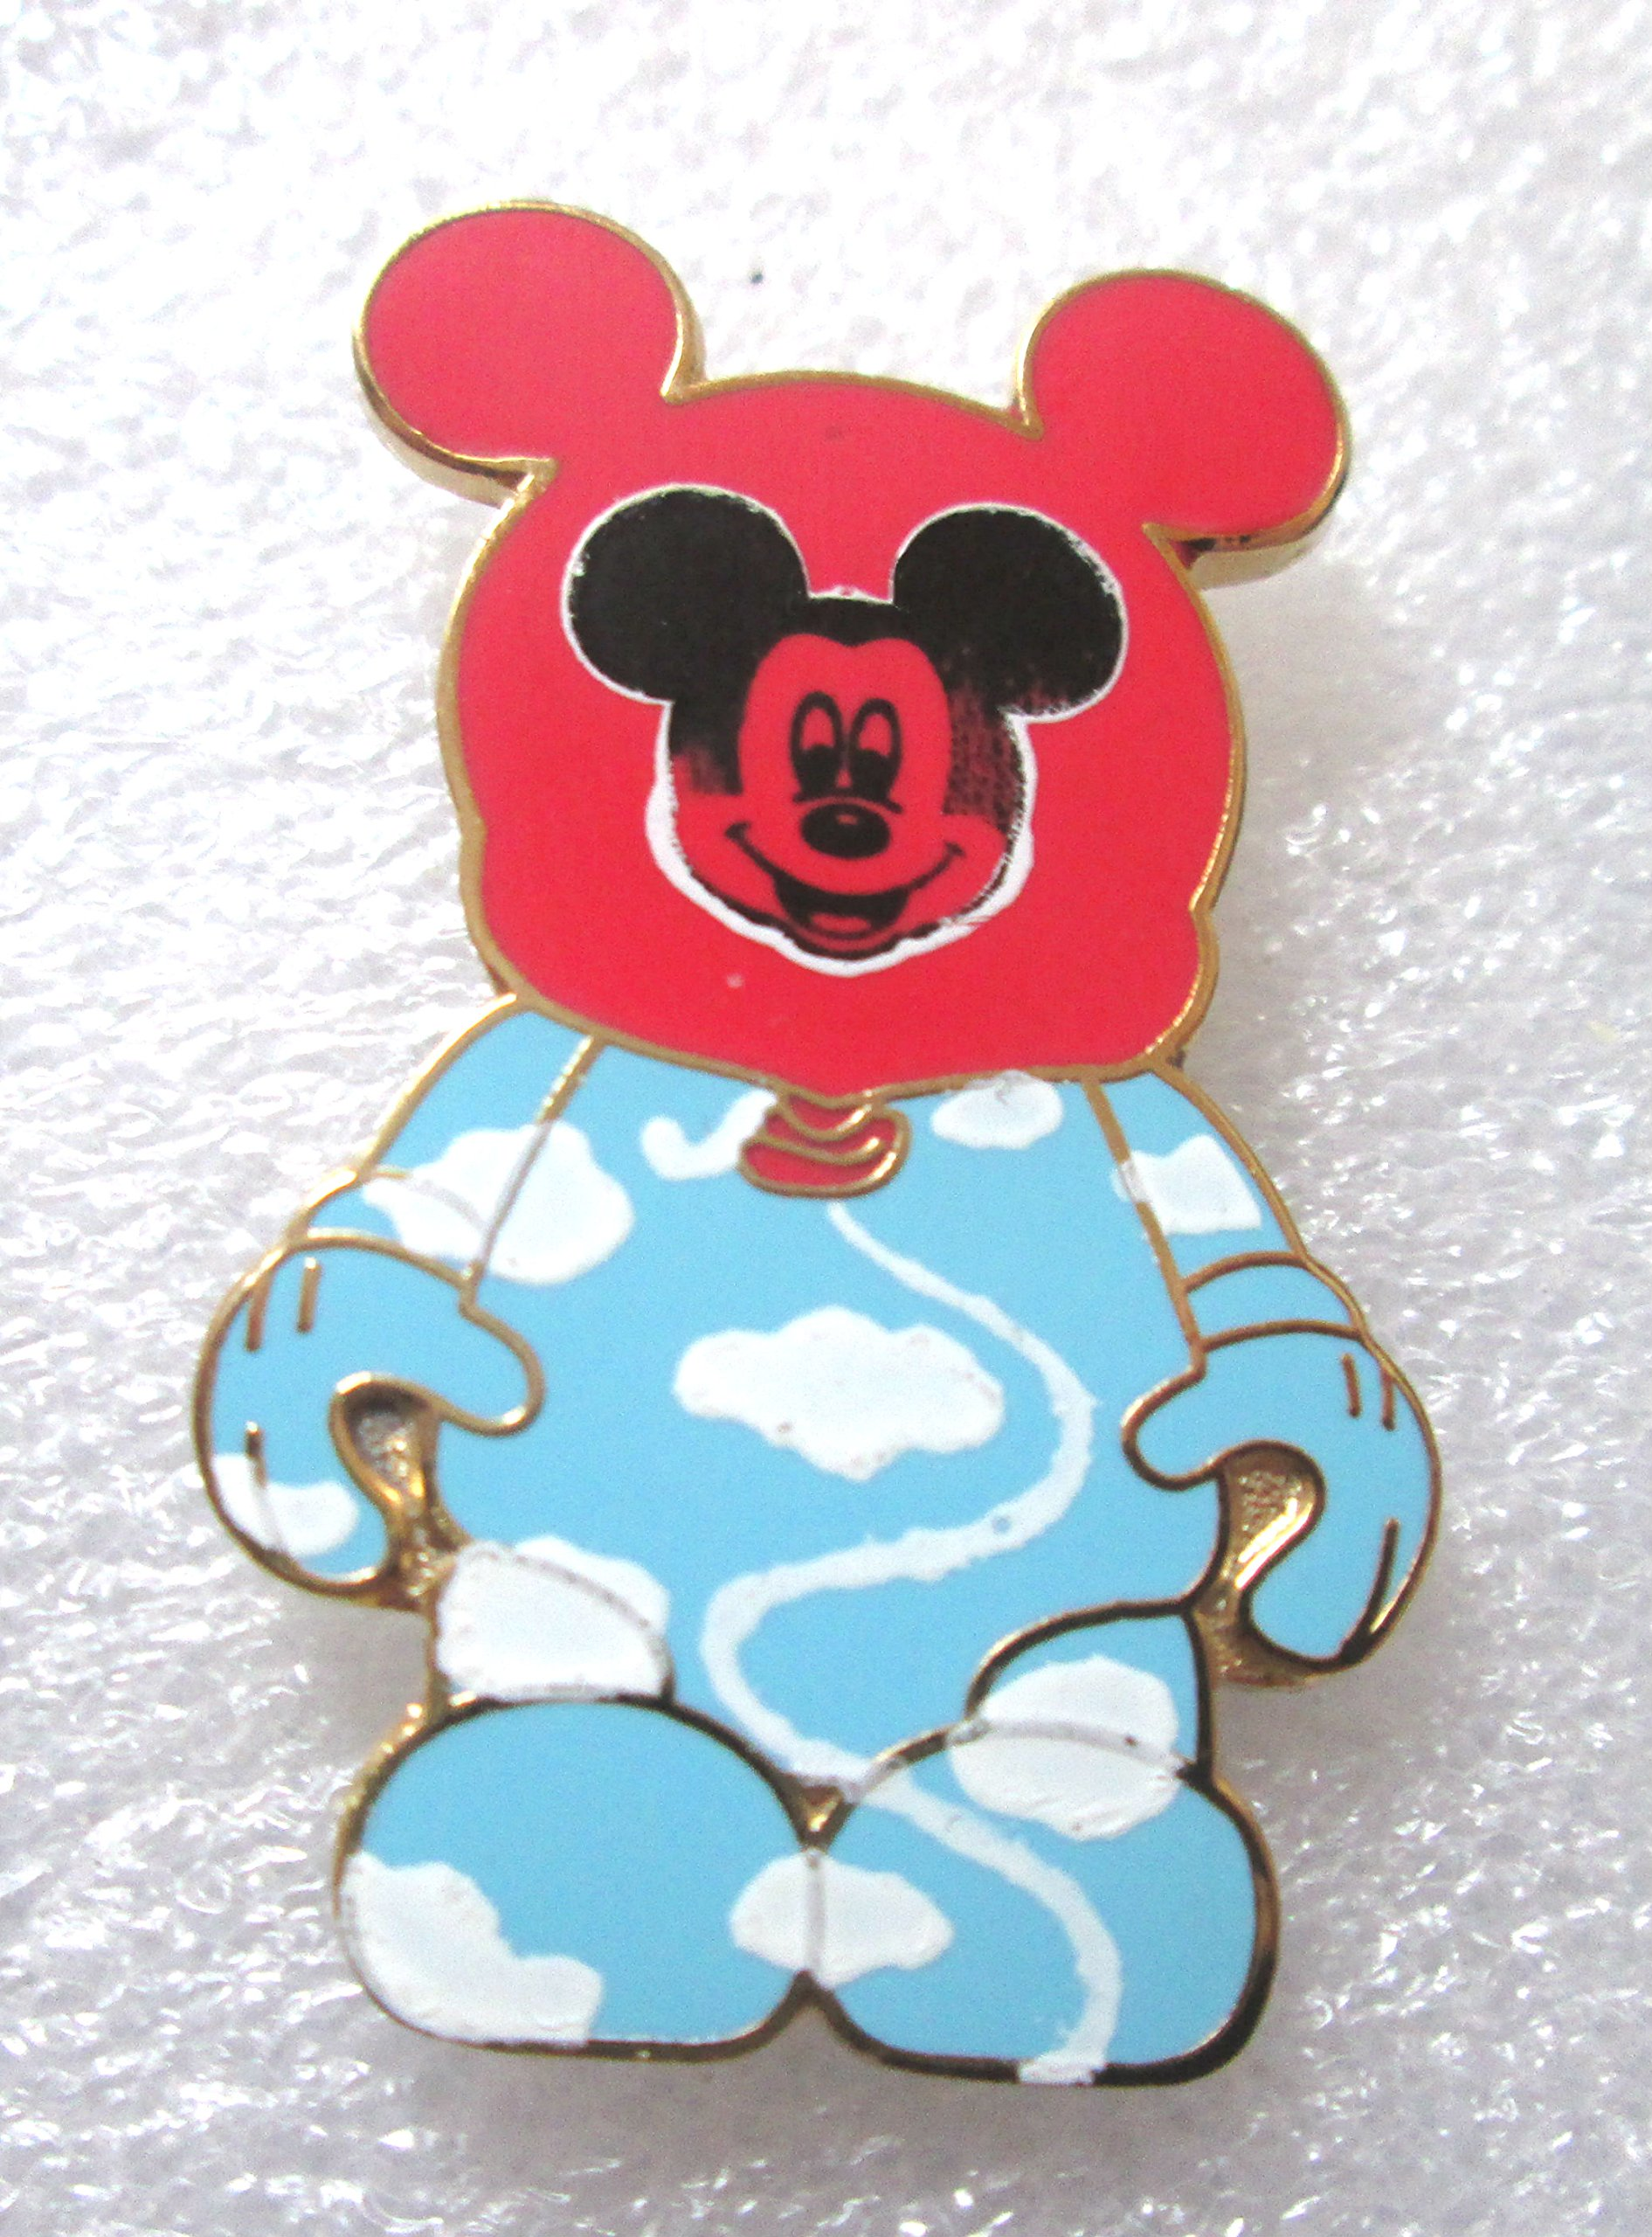 Disney's Vinylmation Mystery Pin Collection Park #1 - Red Balloon Mickey (Chaser) Disney Trading Pin by Disney